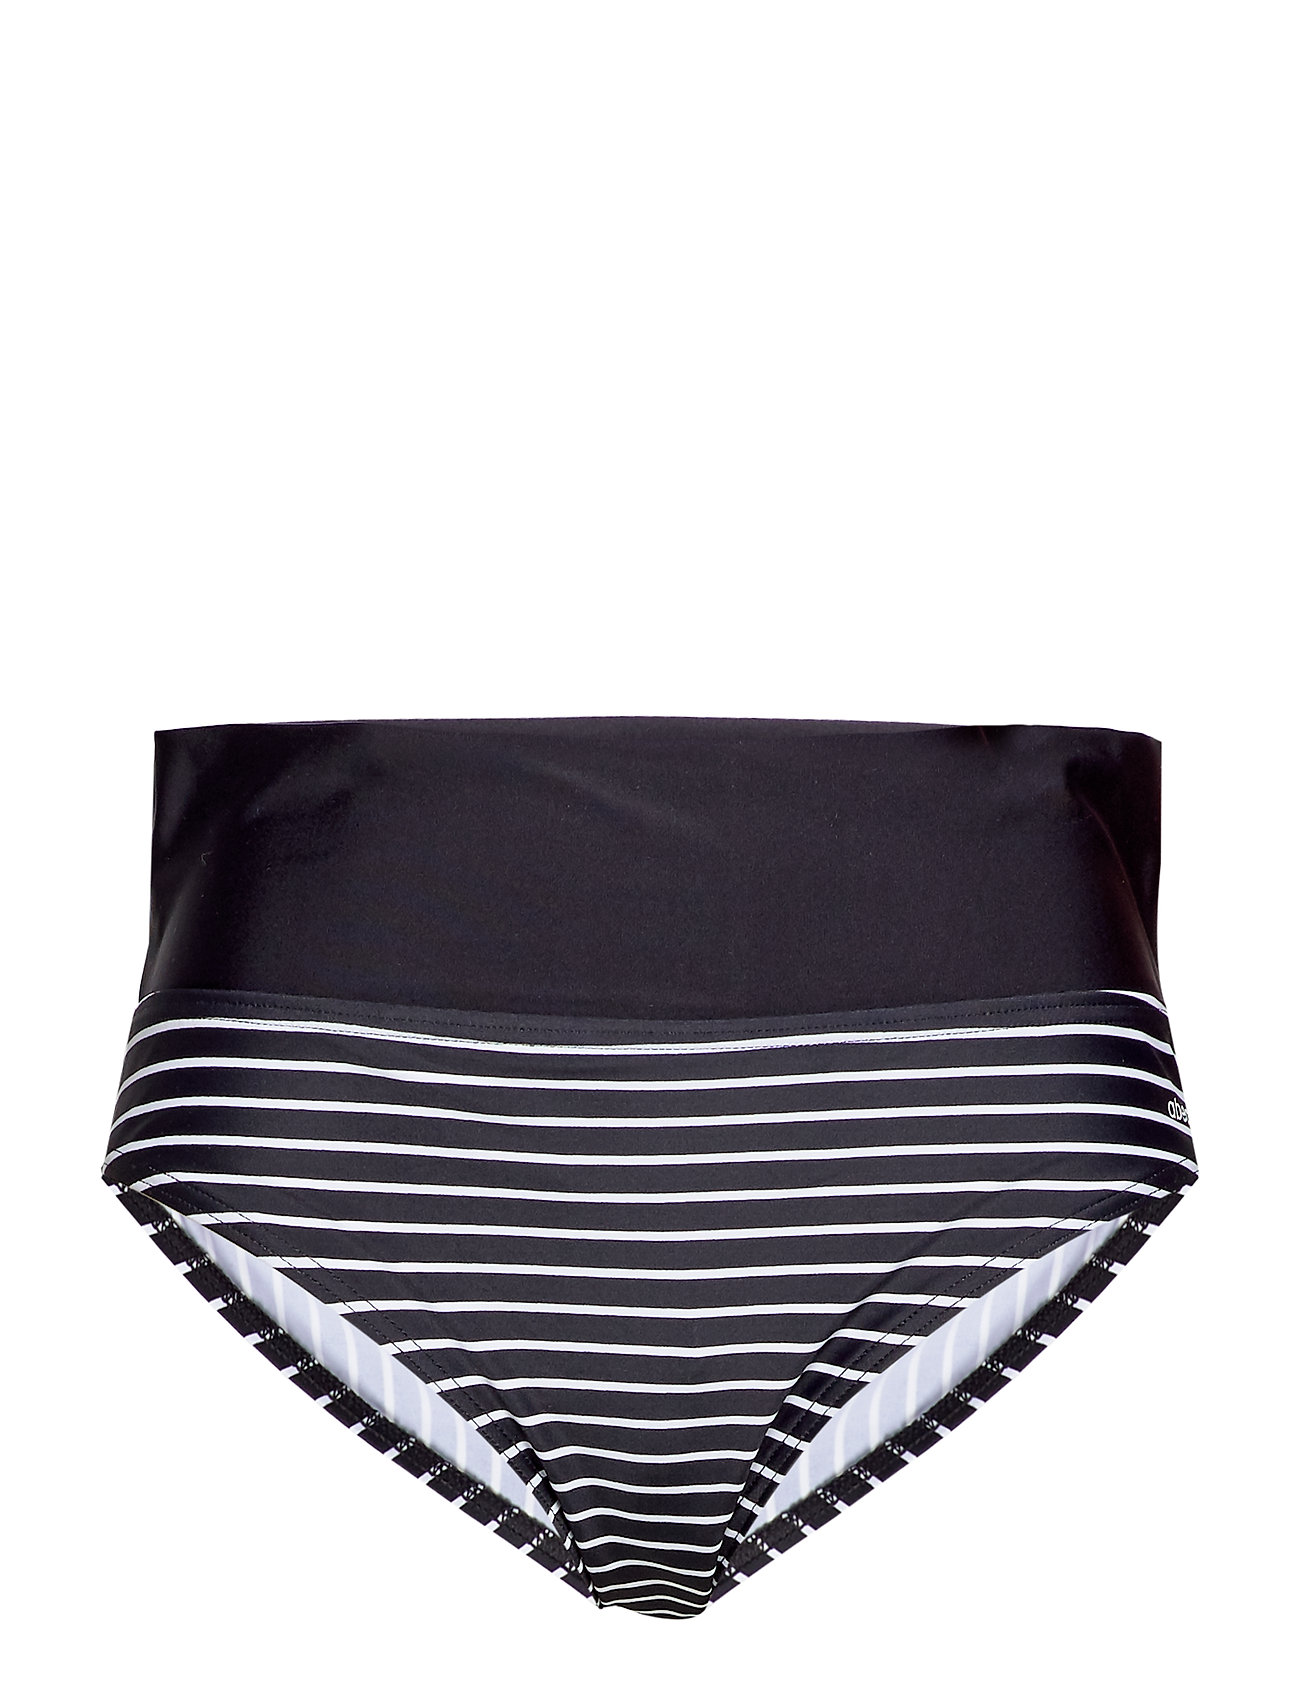 Abecita Wild in stripes - BLACK/WHITE